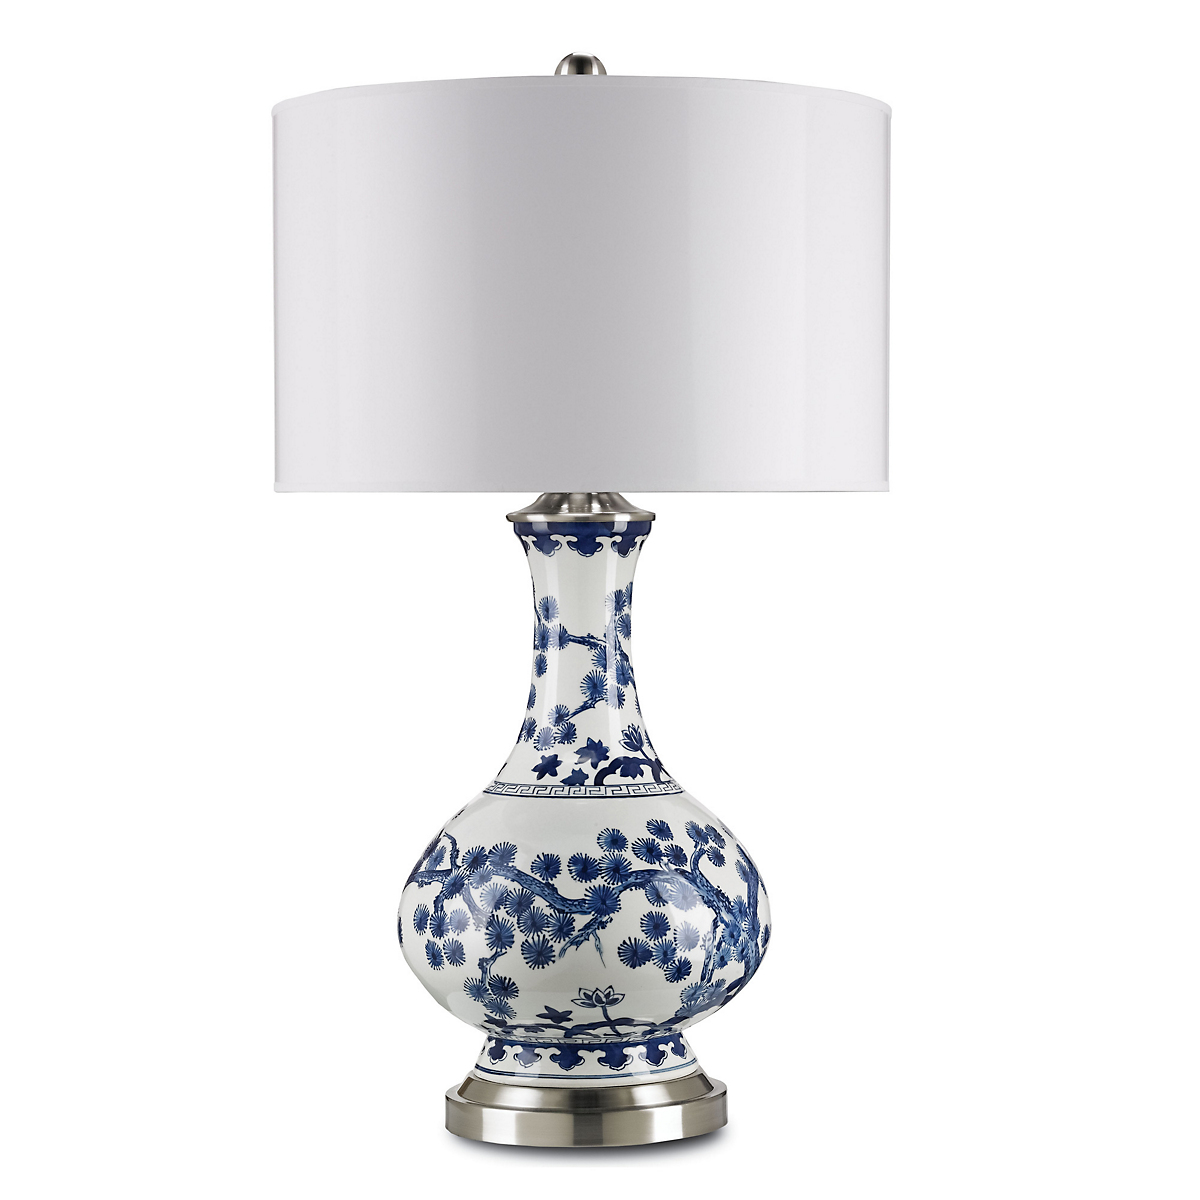 Currey & Company Jardin Table Lamp